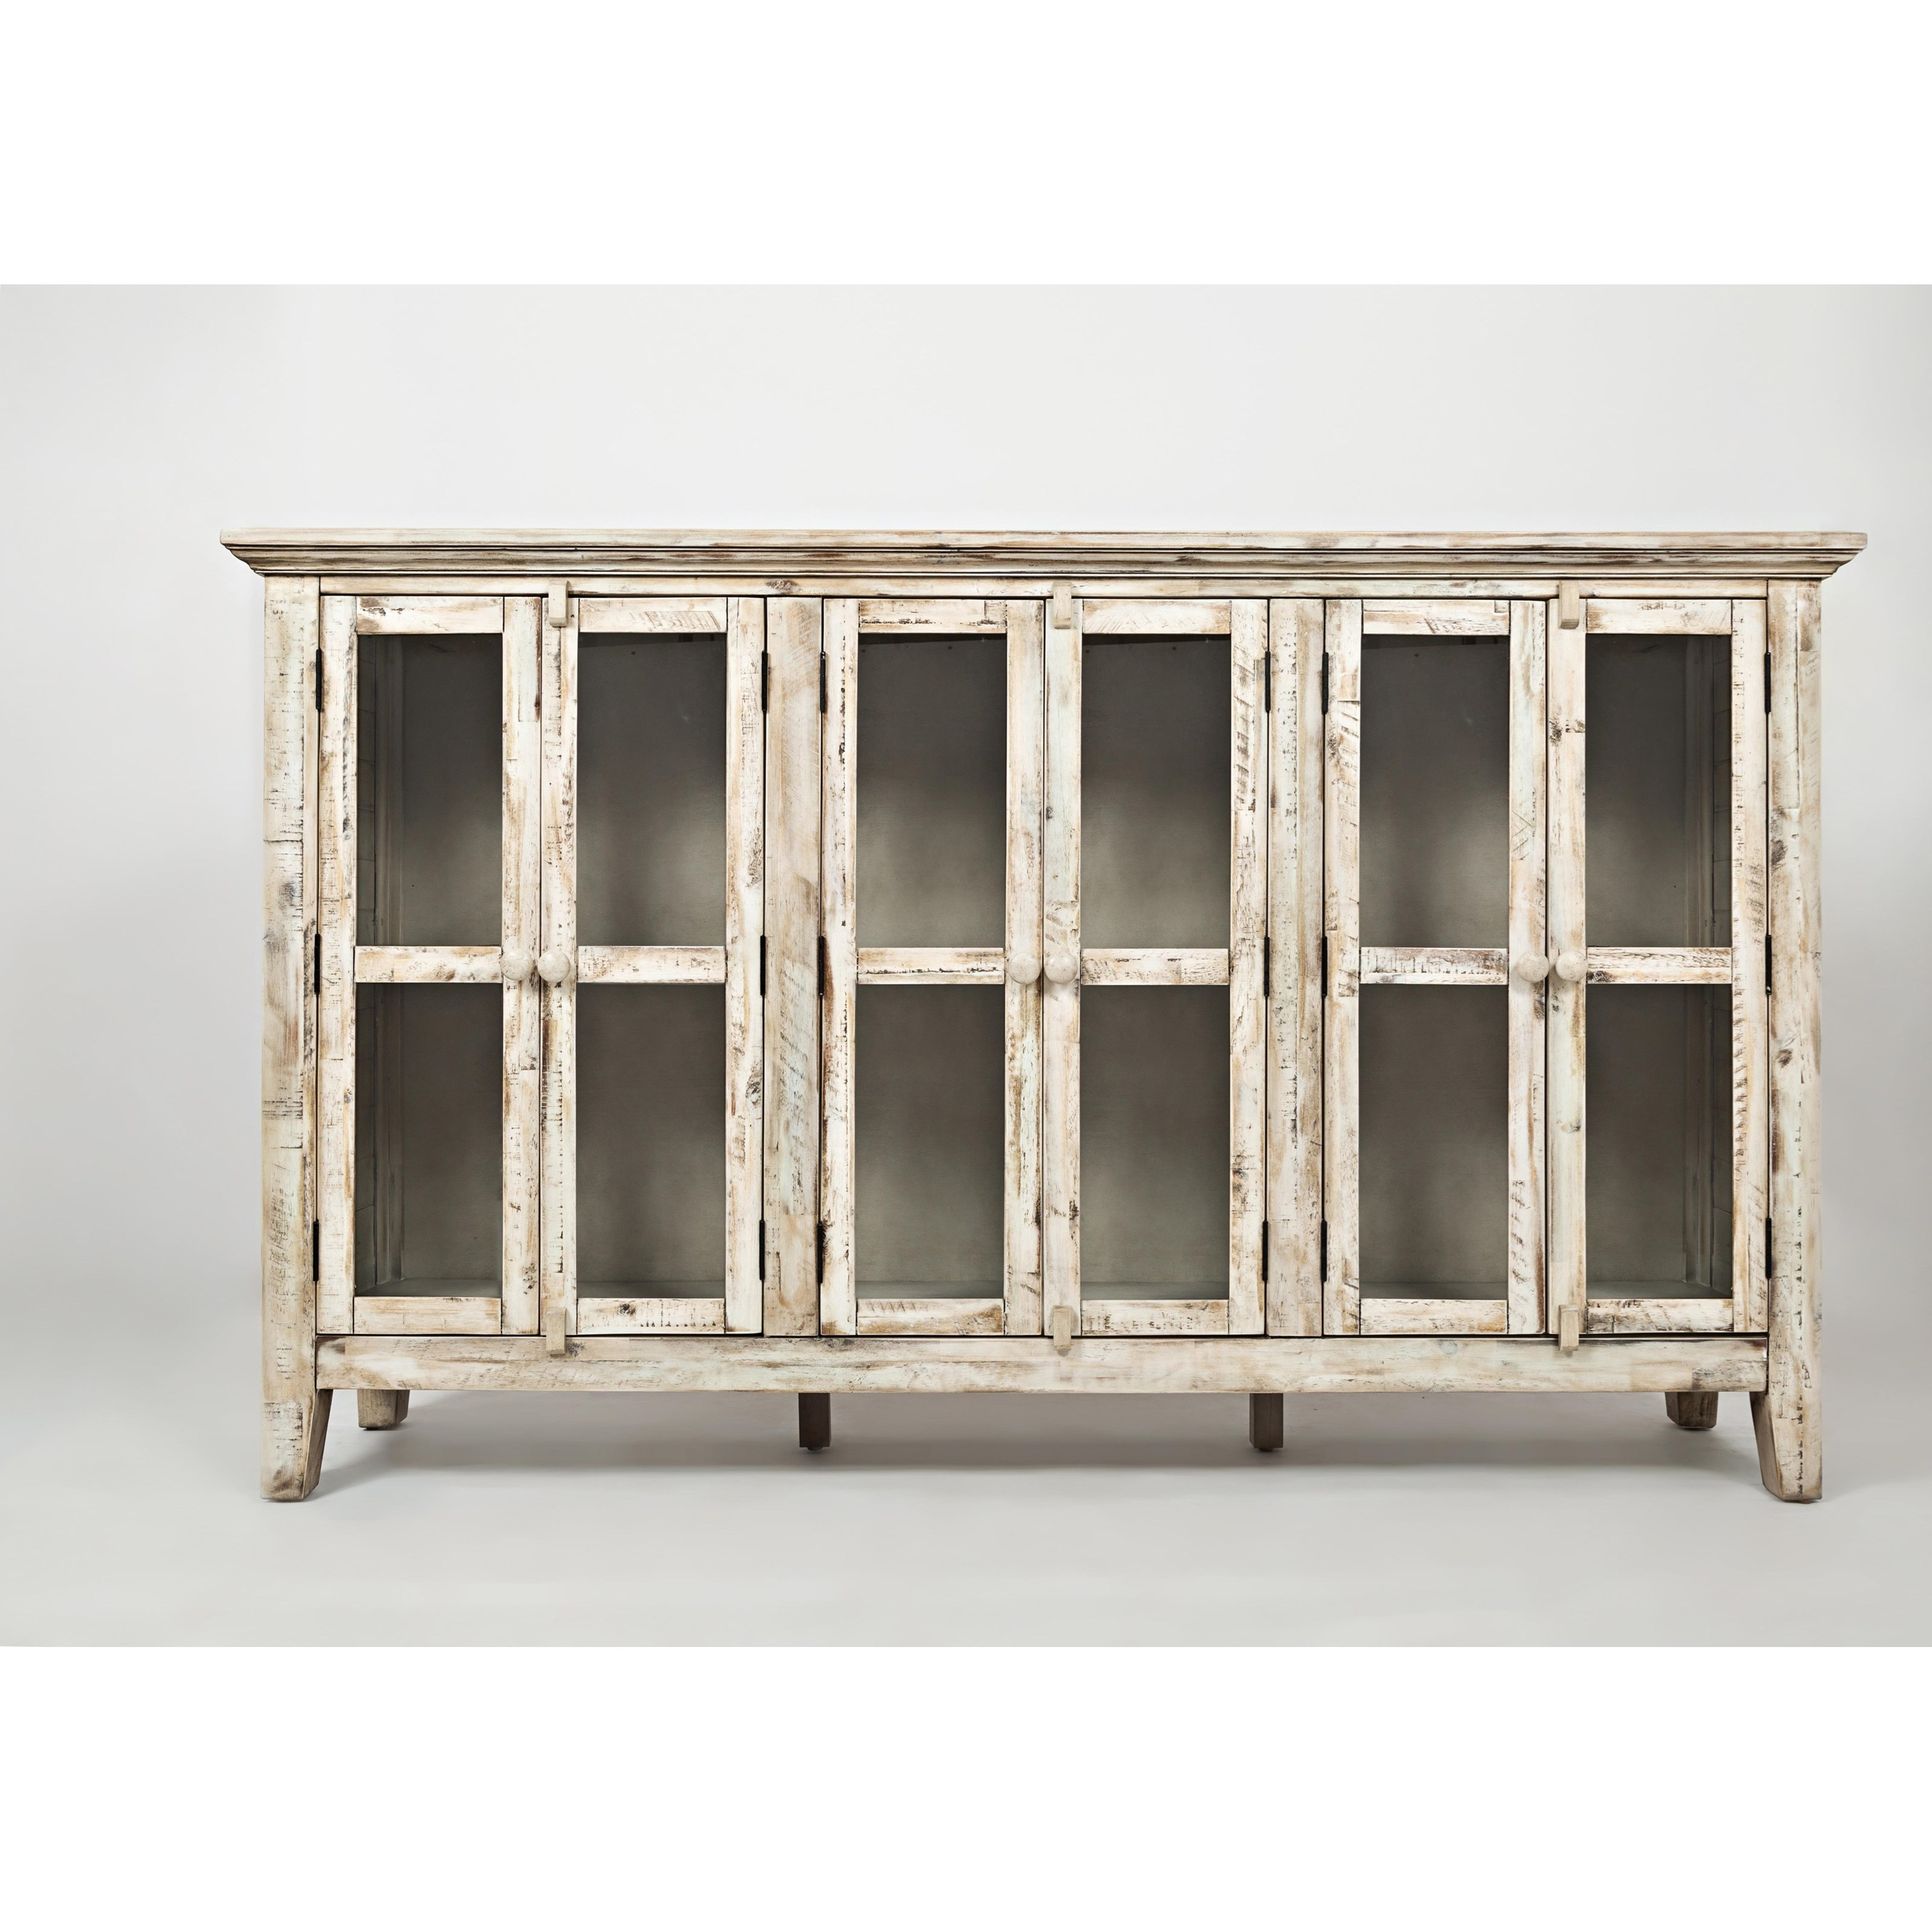 "Rustic Shores 70"" Accent Cabinet by Jofran at Johnny Janosik"